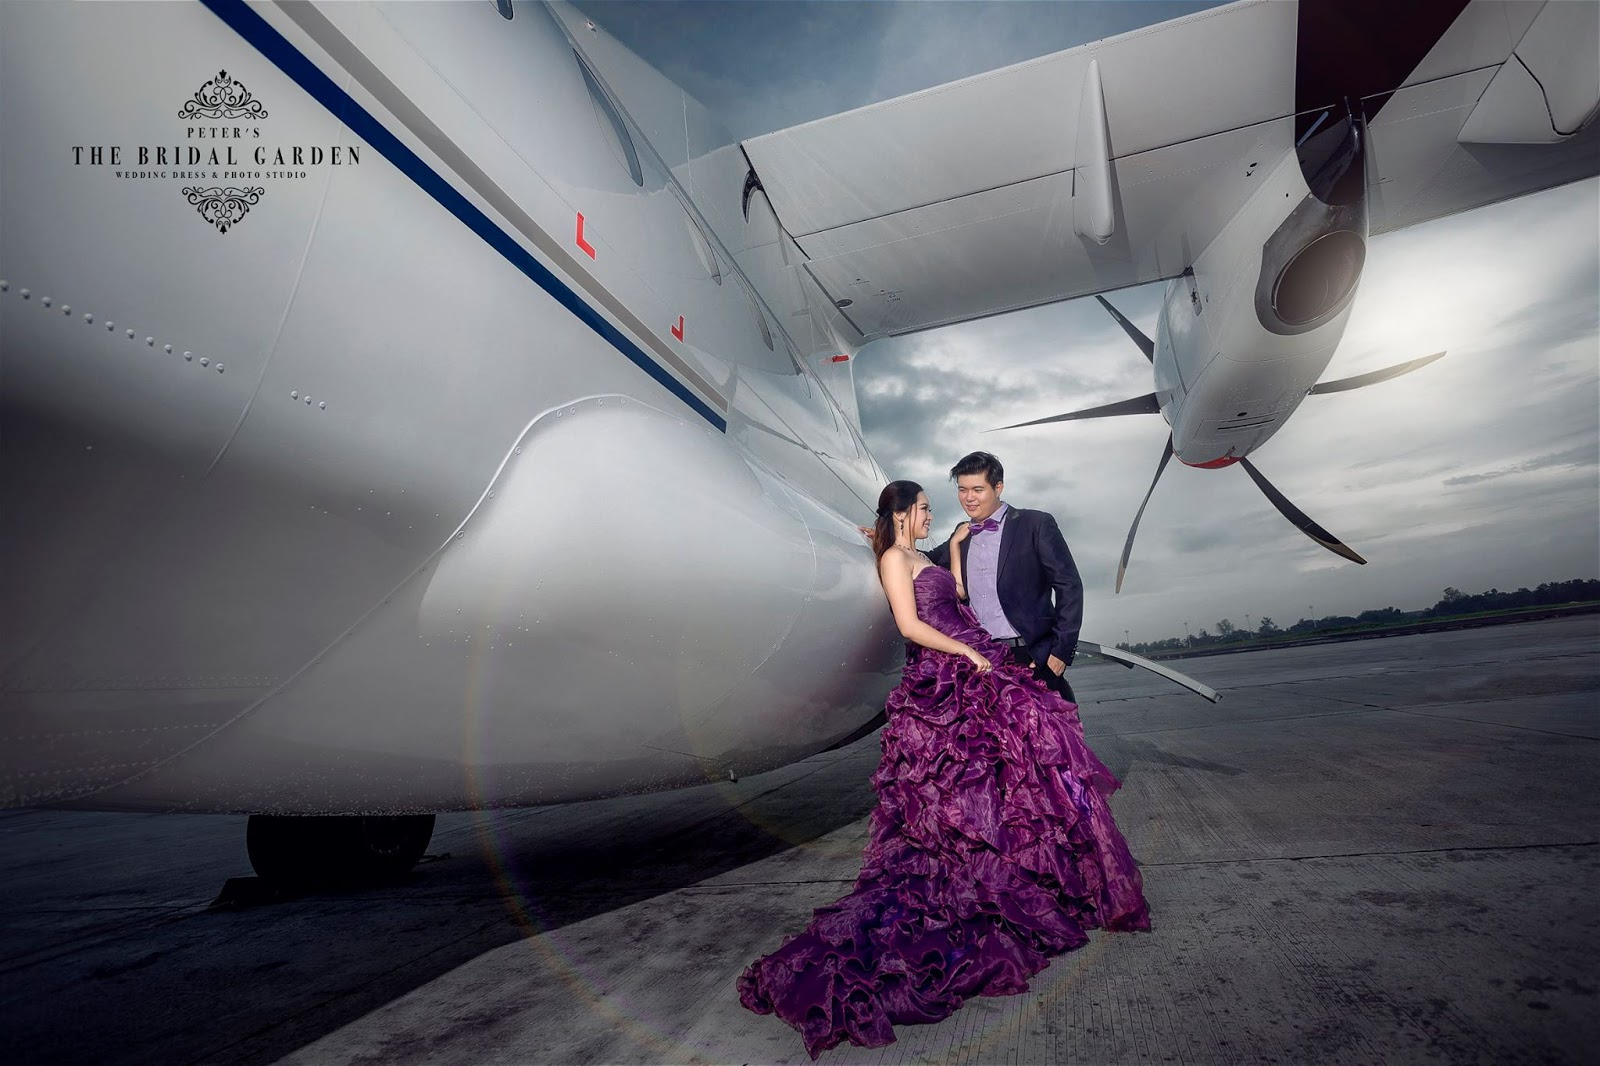 Moe Yu San Beautiful Moment Prewedding Pictures In Air Plane With Her Fiance